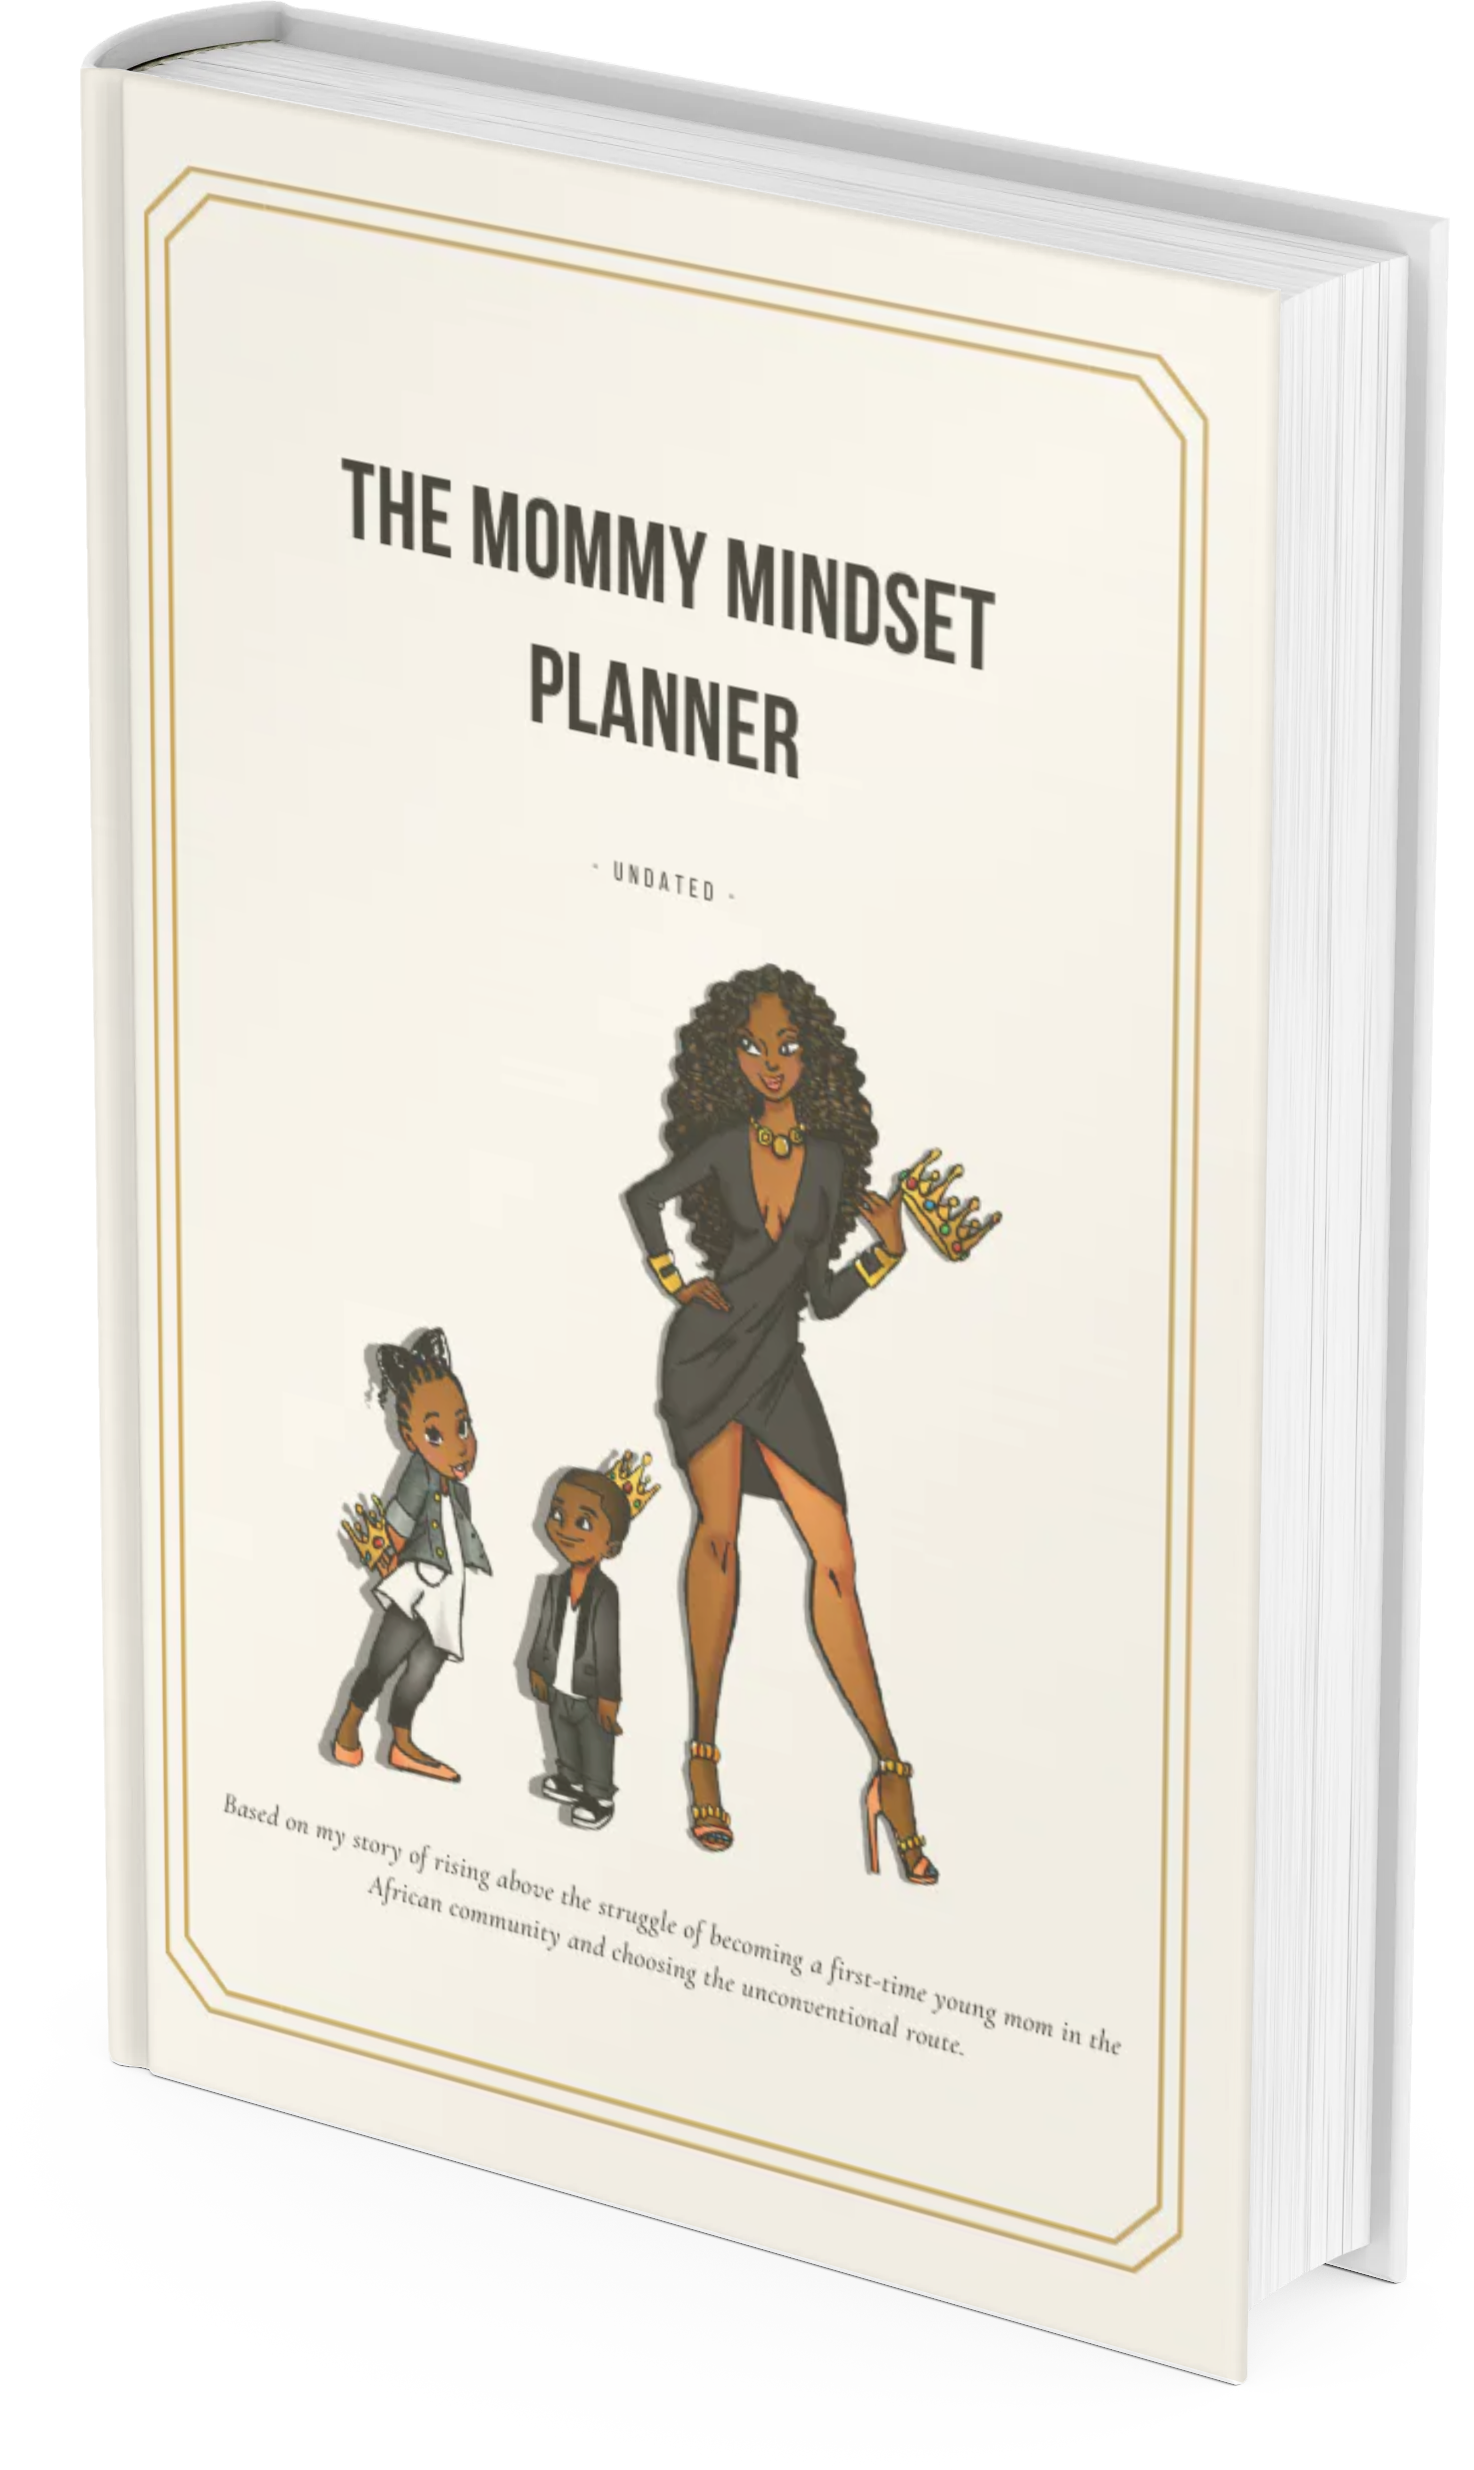 Mommy Mindset Planner - Family Caricature